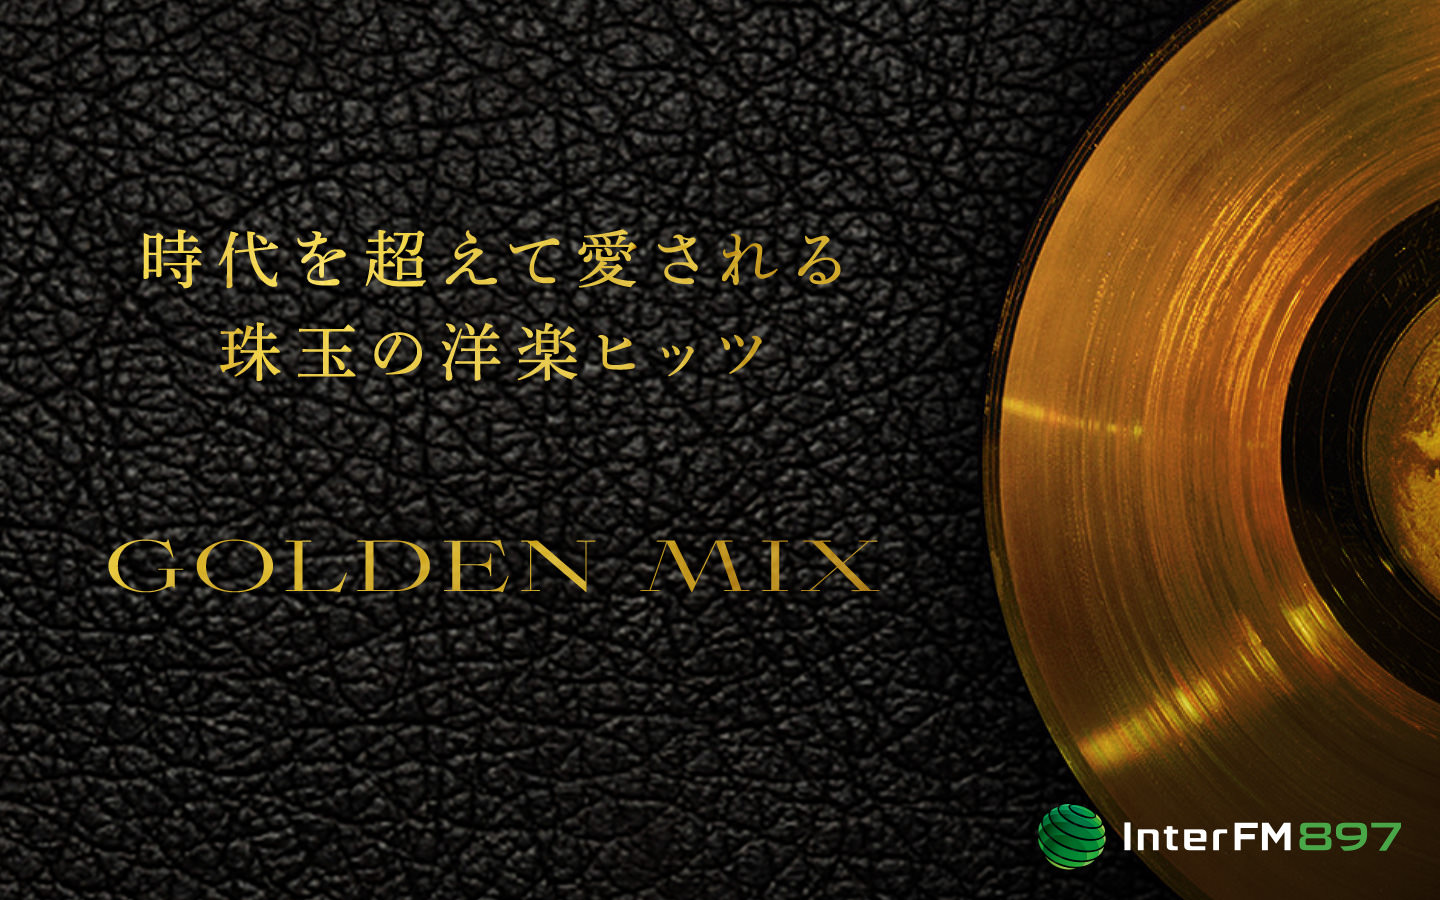 GOLDEN MIX